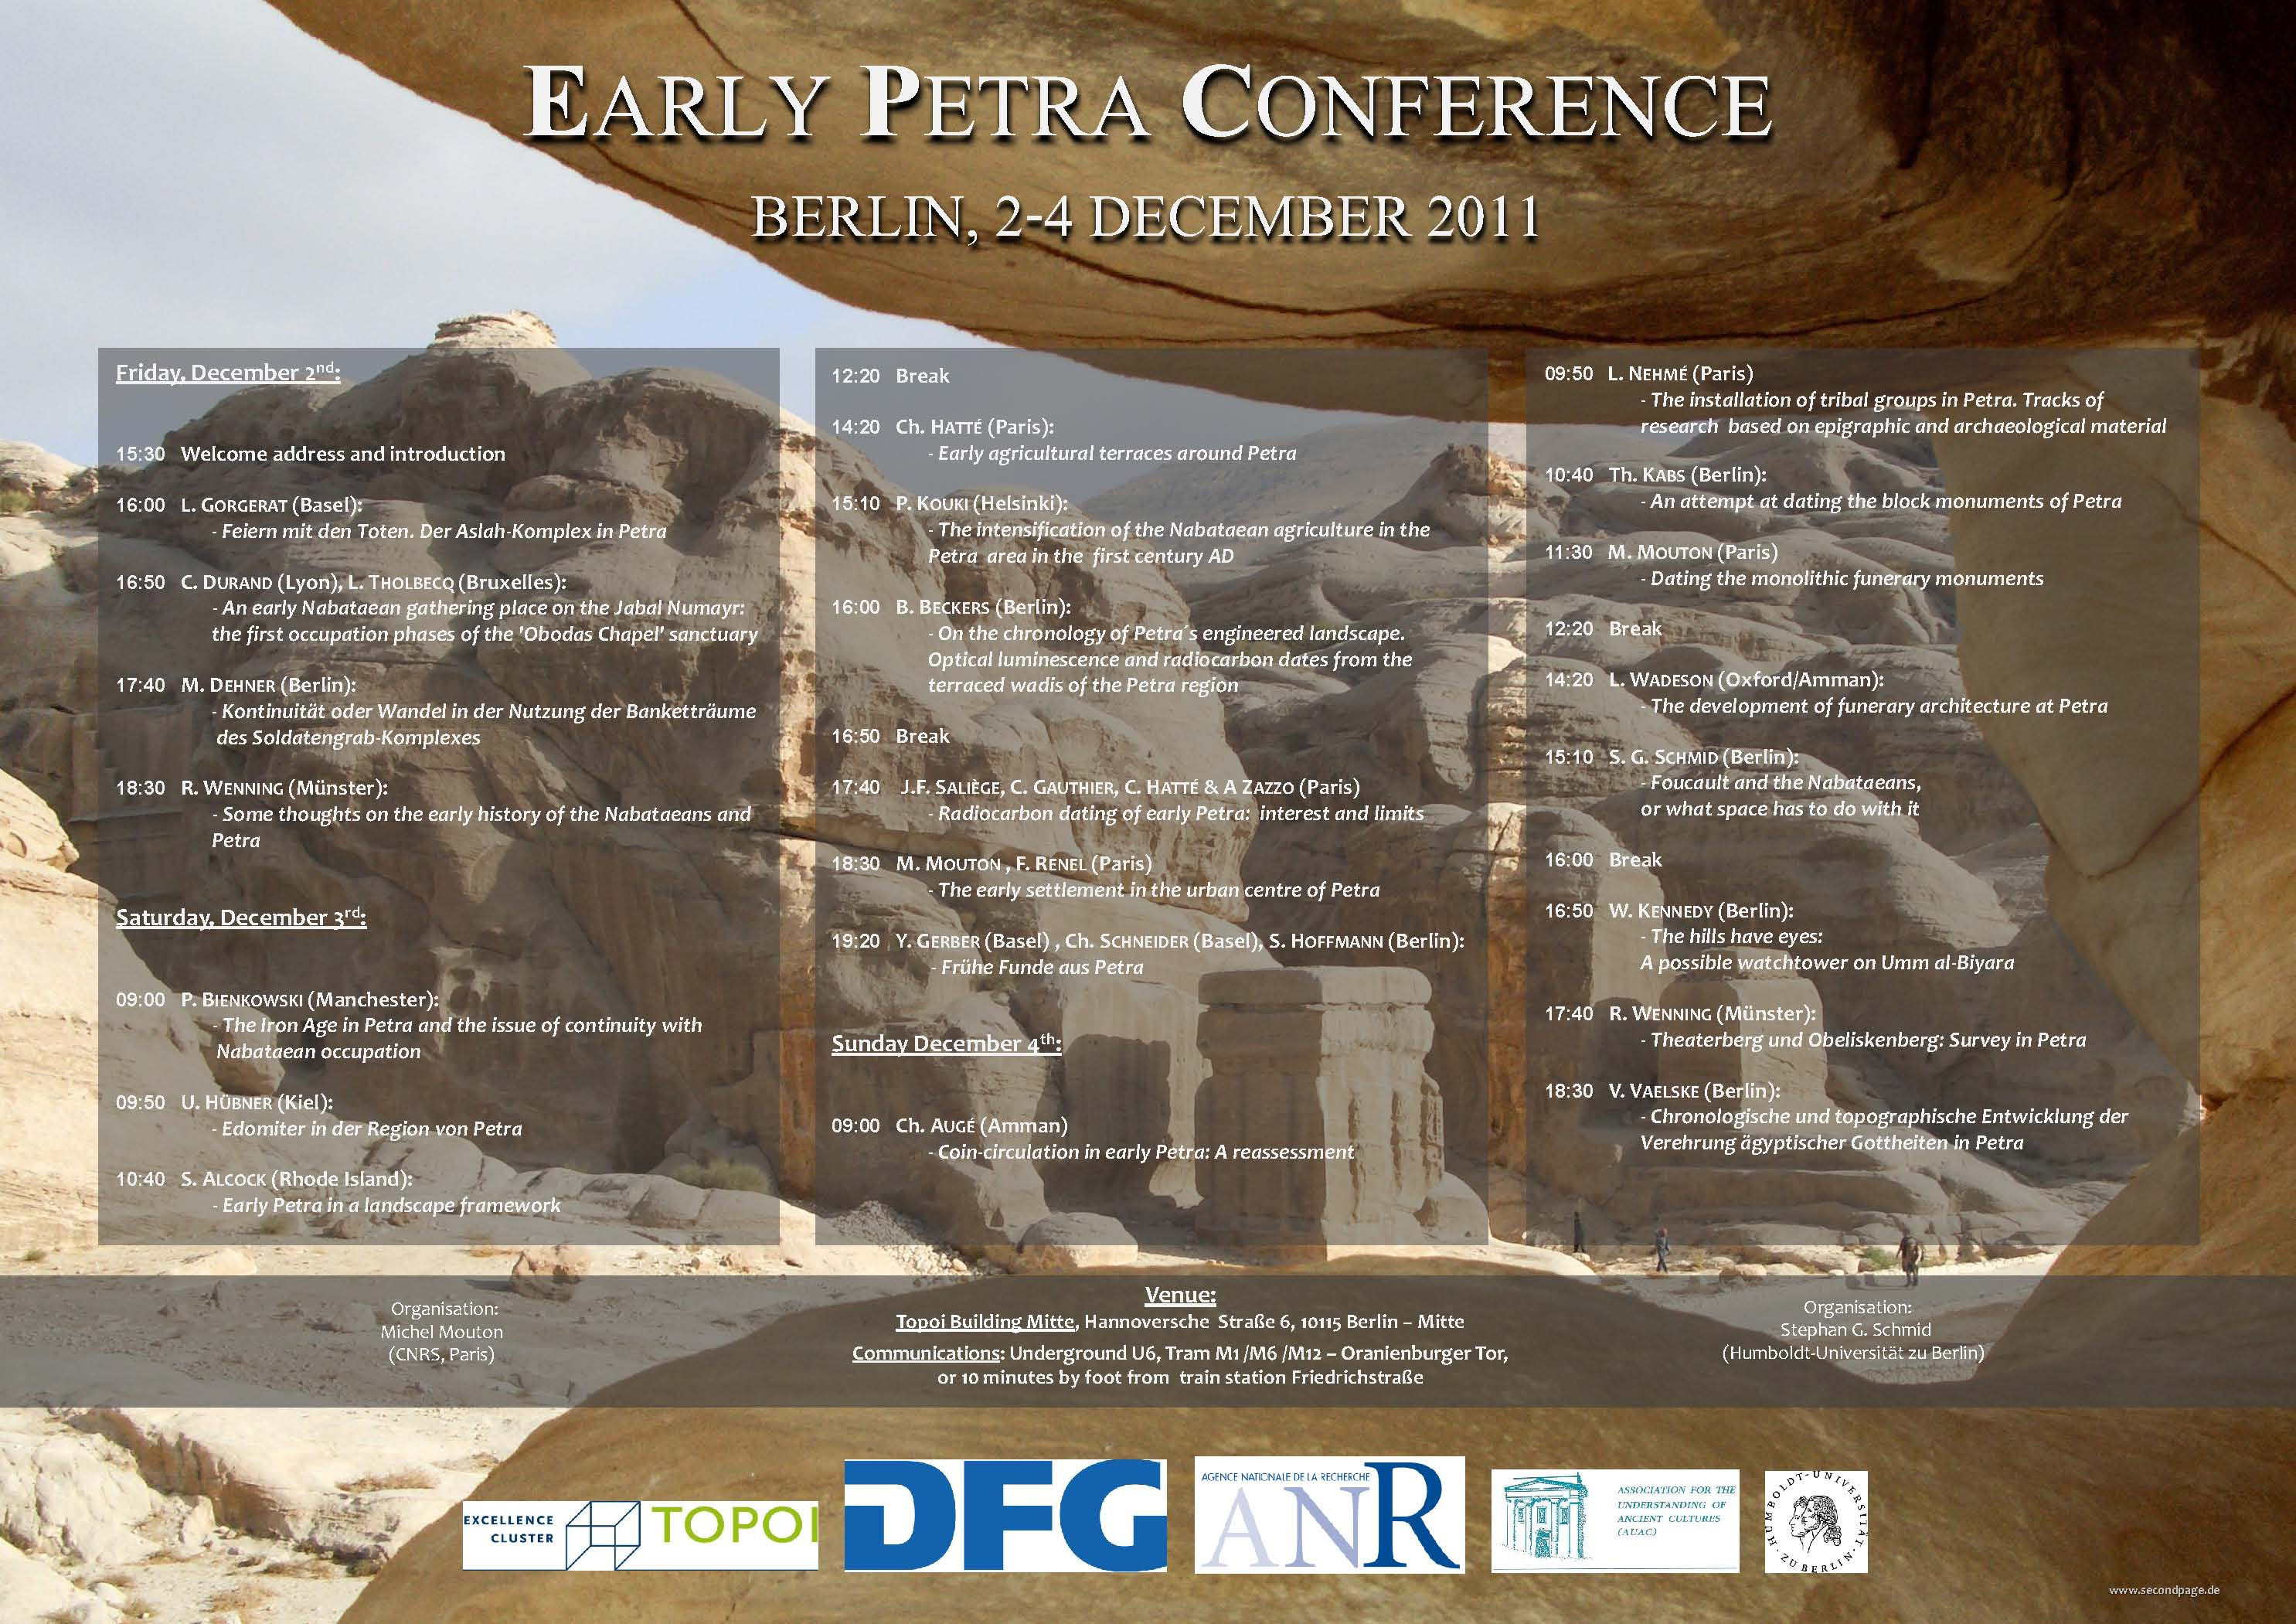 Poster - Early Petra Conference. Berlin, 2-4. December 2011